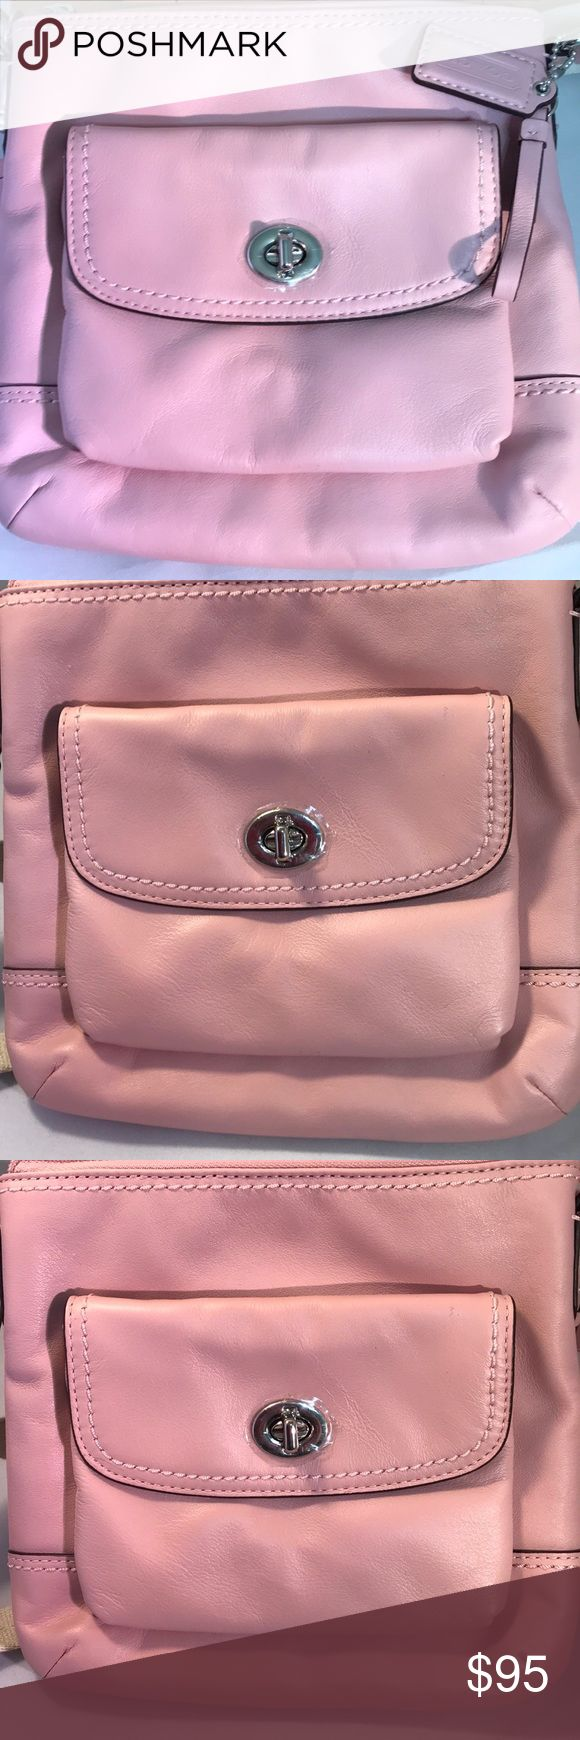 COACH CAMPBELL LEATHER SWING PACK PINK TULLE F511 This brand new Coach swingpack can be used as a crossbody as well.  This handbag is 100% authentic.  The hardware on the front is a turnlock pocket , silvertone color with a zipper closure.  On the inside there is a multifunction open pocket with the Coach care instruction card.  What a beautiful gift for yourself, friends or family.    This product has no flaws to mention.  It comes from a smoke free and pet free environment.  We are simply…